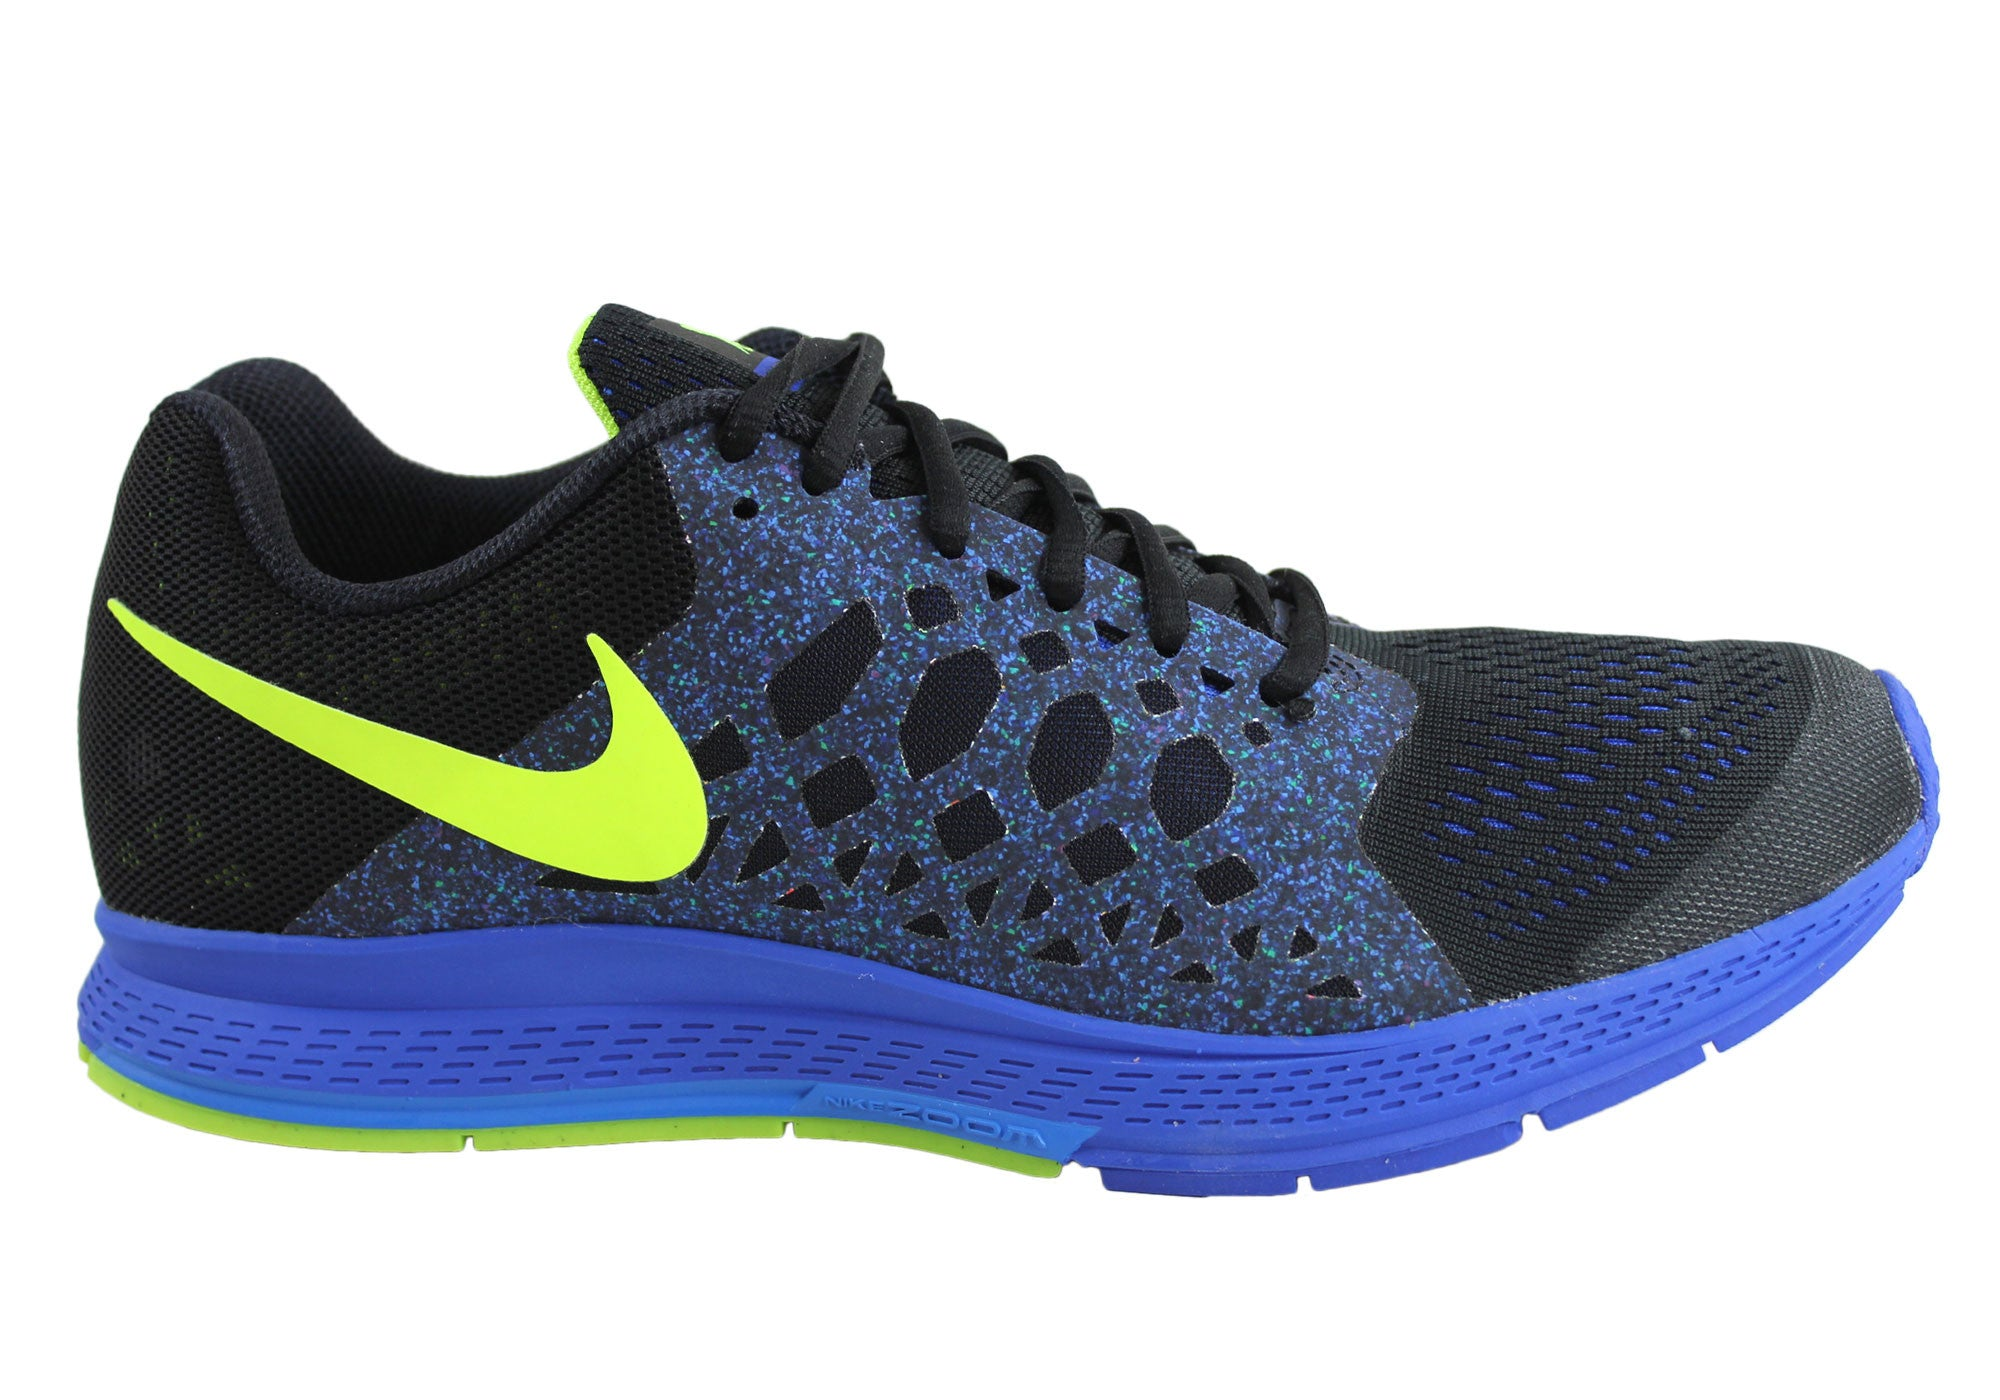 detailed look 669df 00d02 Nike Air Zoom Pegasus 31 Mens Running Sport Shoes   Brand House Direct